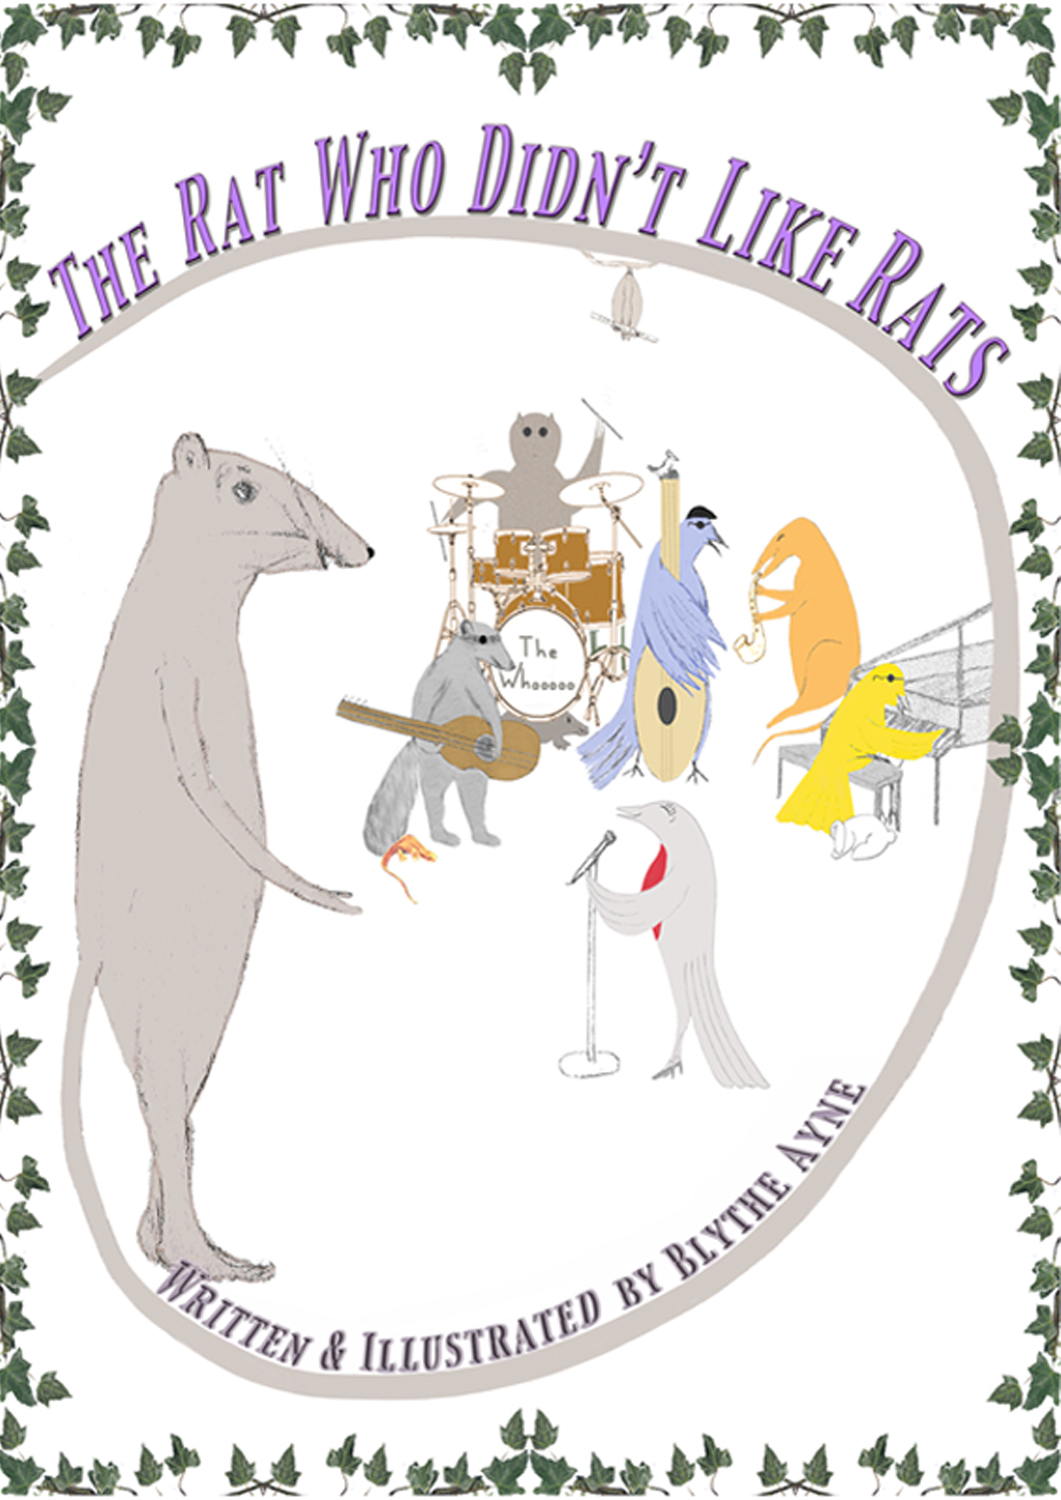 The Rat Who Didn't Like Rats by Blythe Ayne